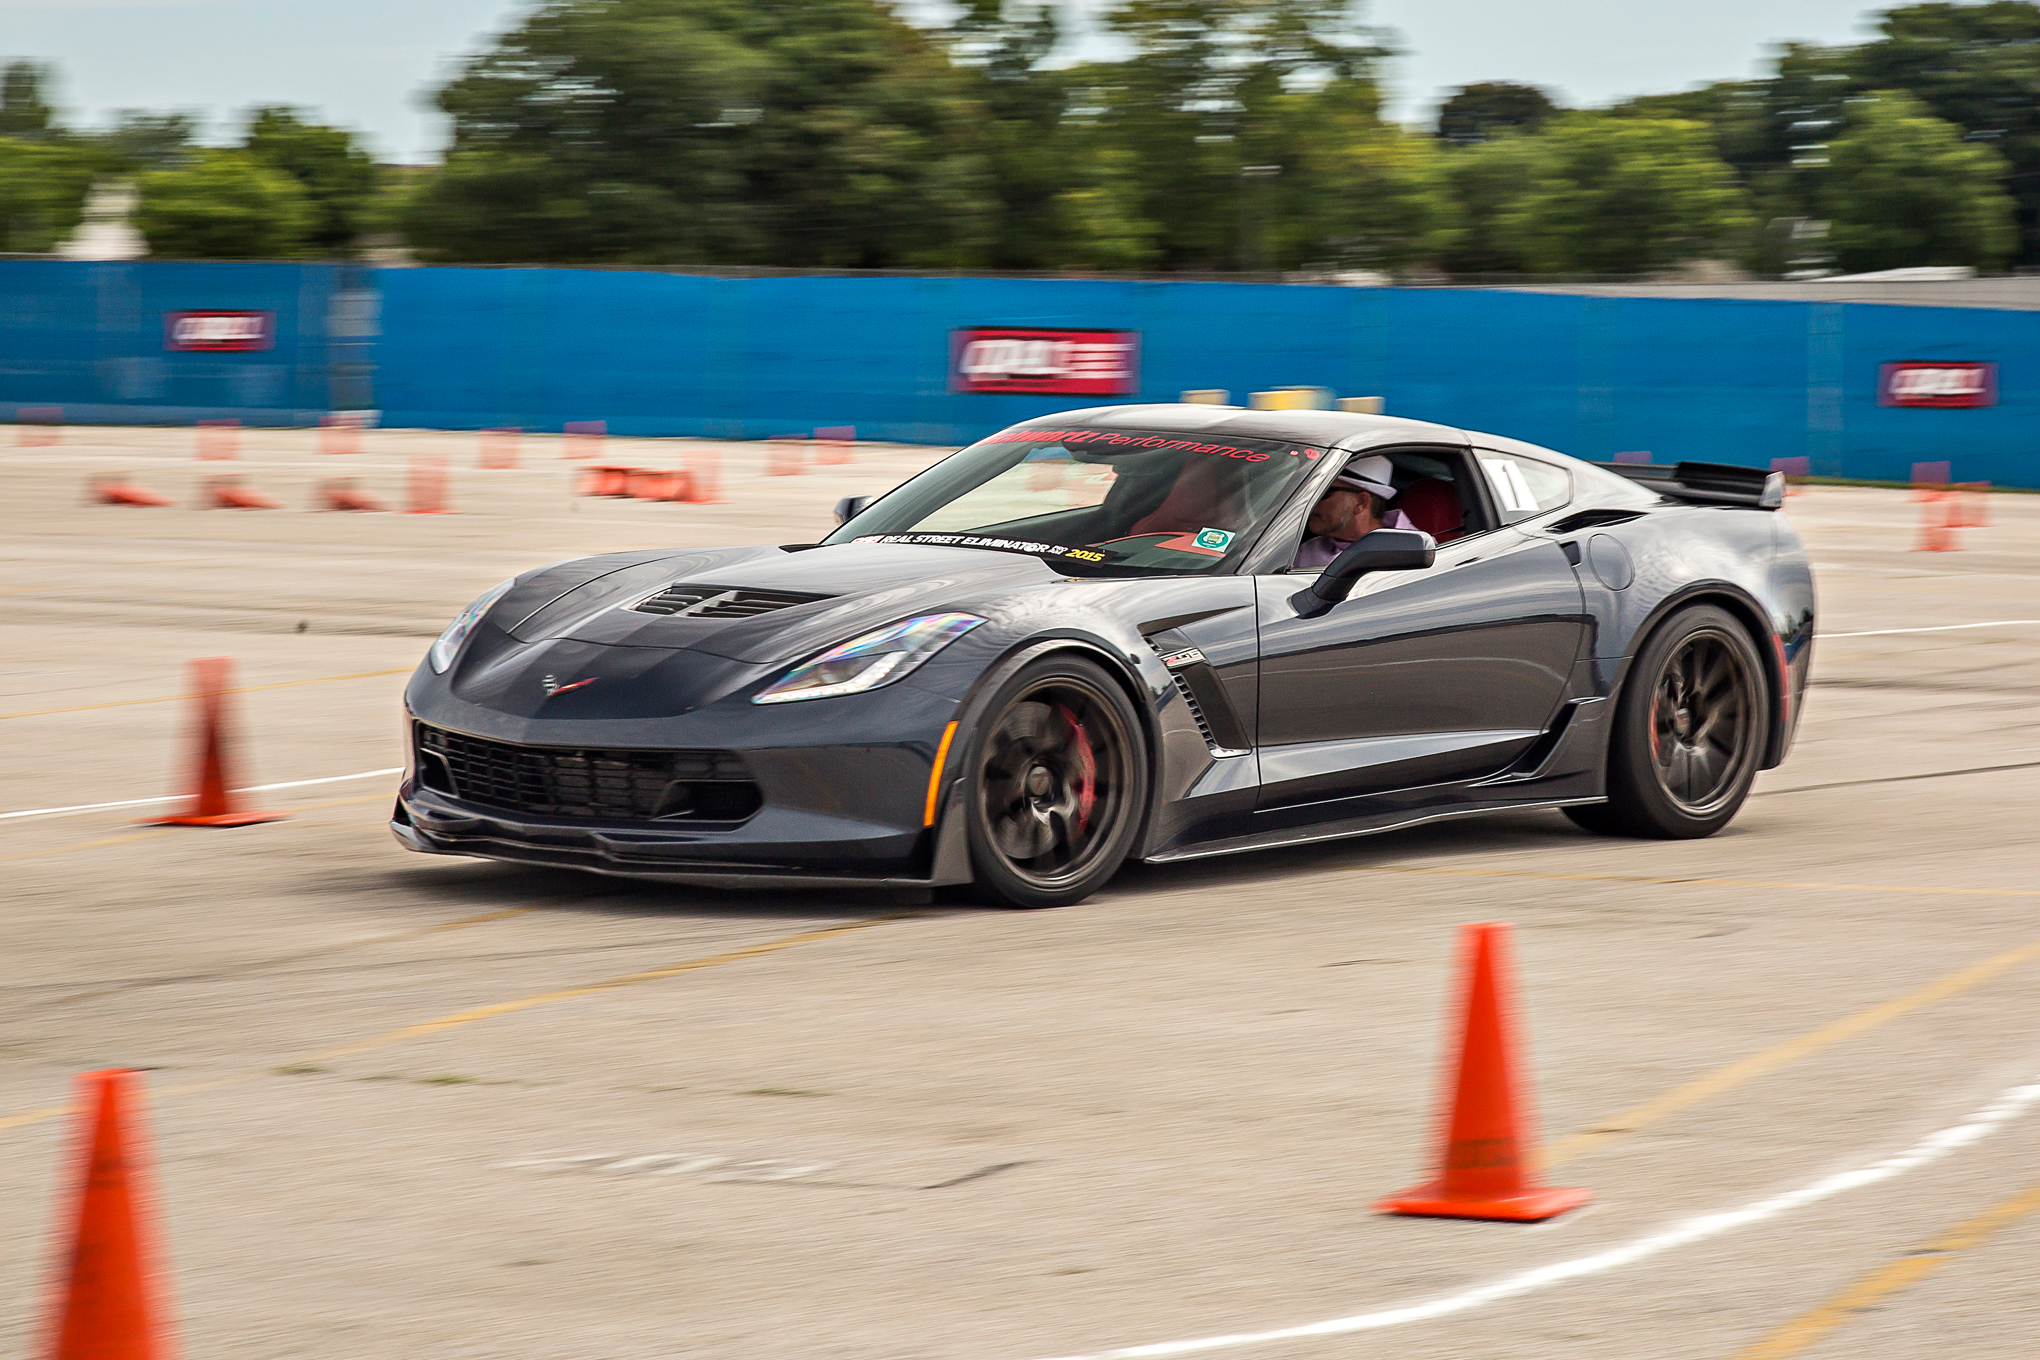 The 2016 Z06 Corvette of Jeff Schwartz cleaned house on the autocross course, scouring the weekend's lowest time of 30.183-seconds.